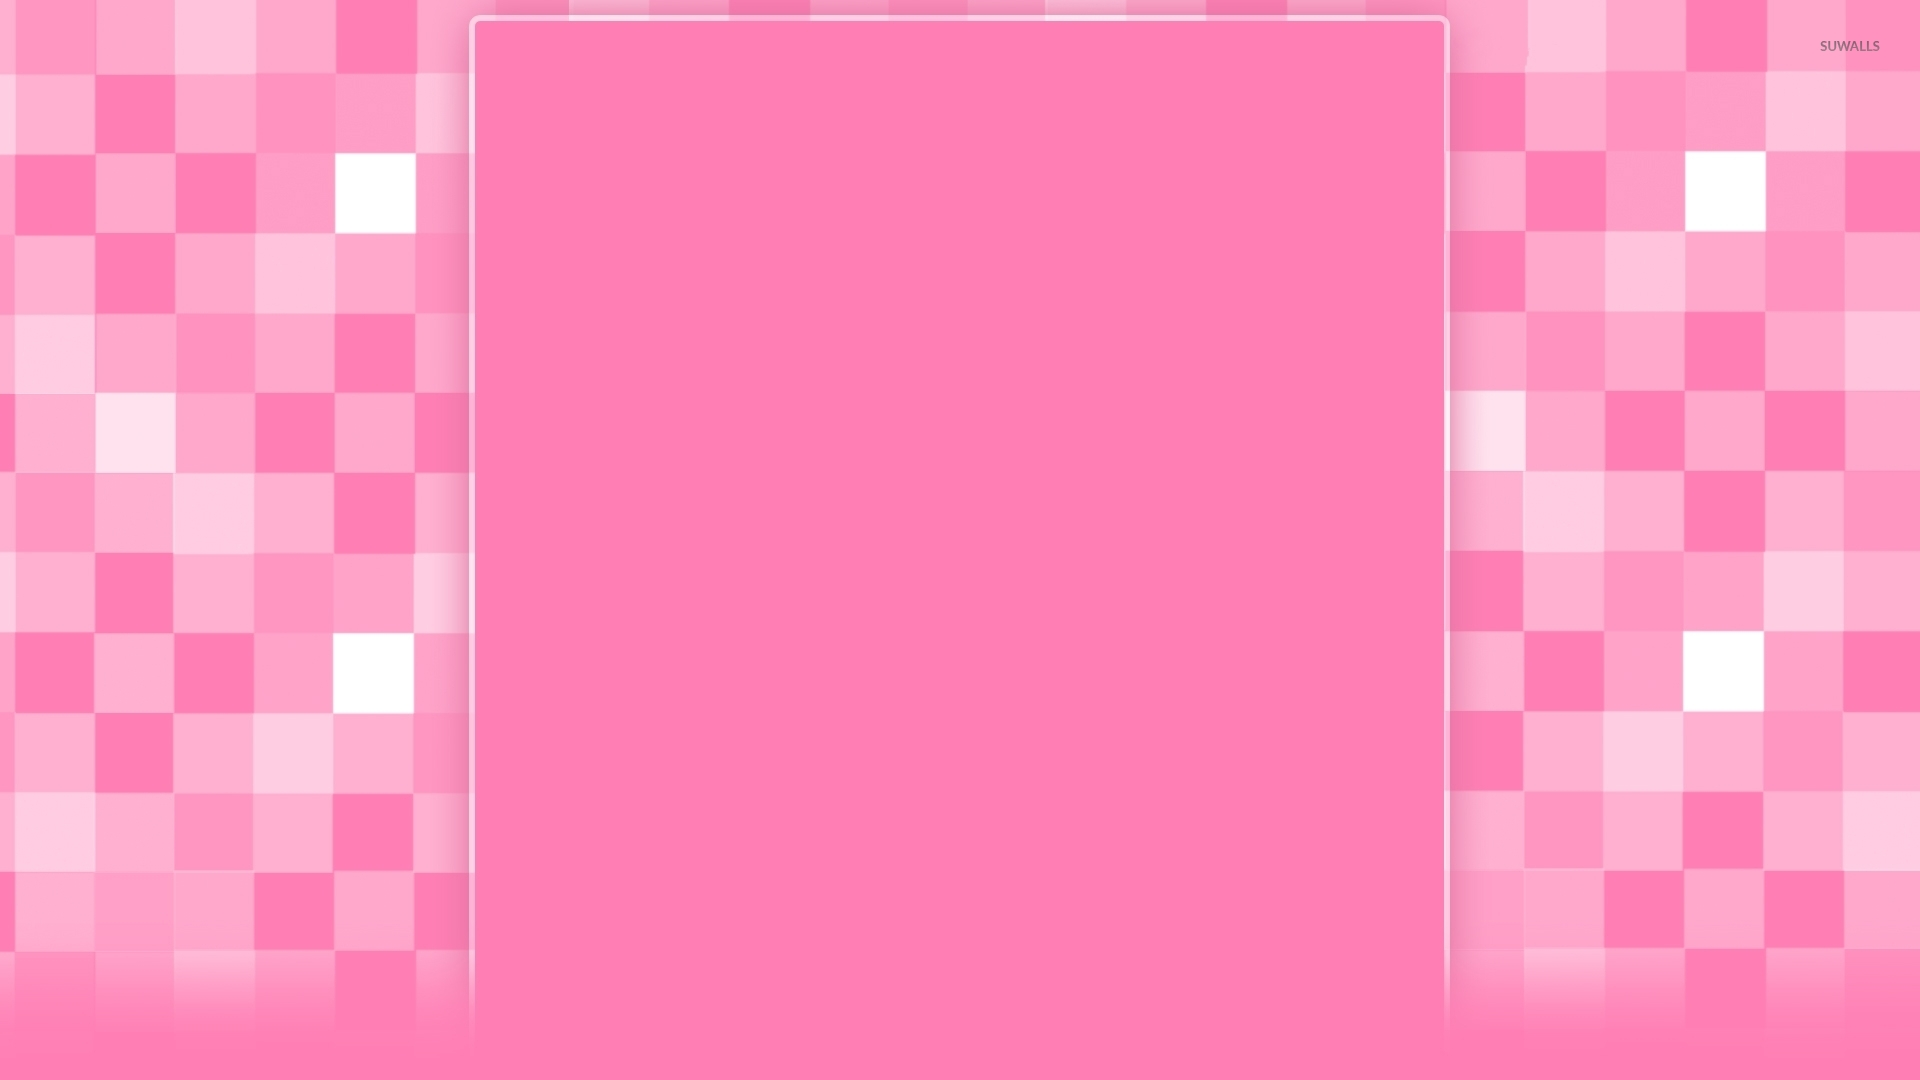 Best Wallpaper Minecraft Colorful - pink-square-pattern-51902-1920x1080  Snapshot_589319.jpg